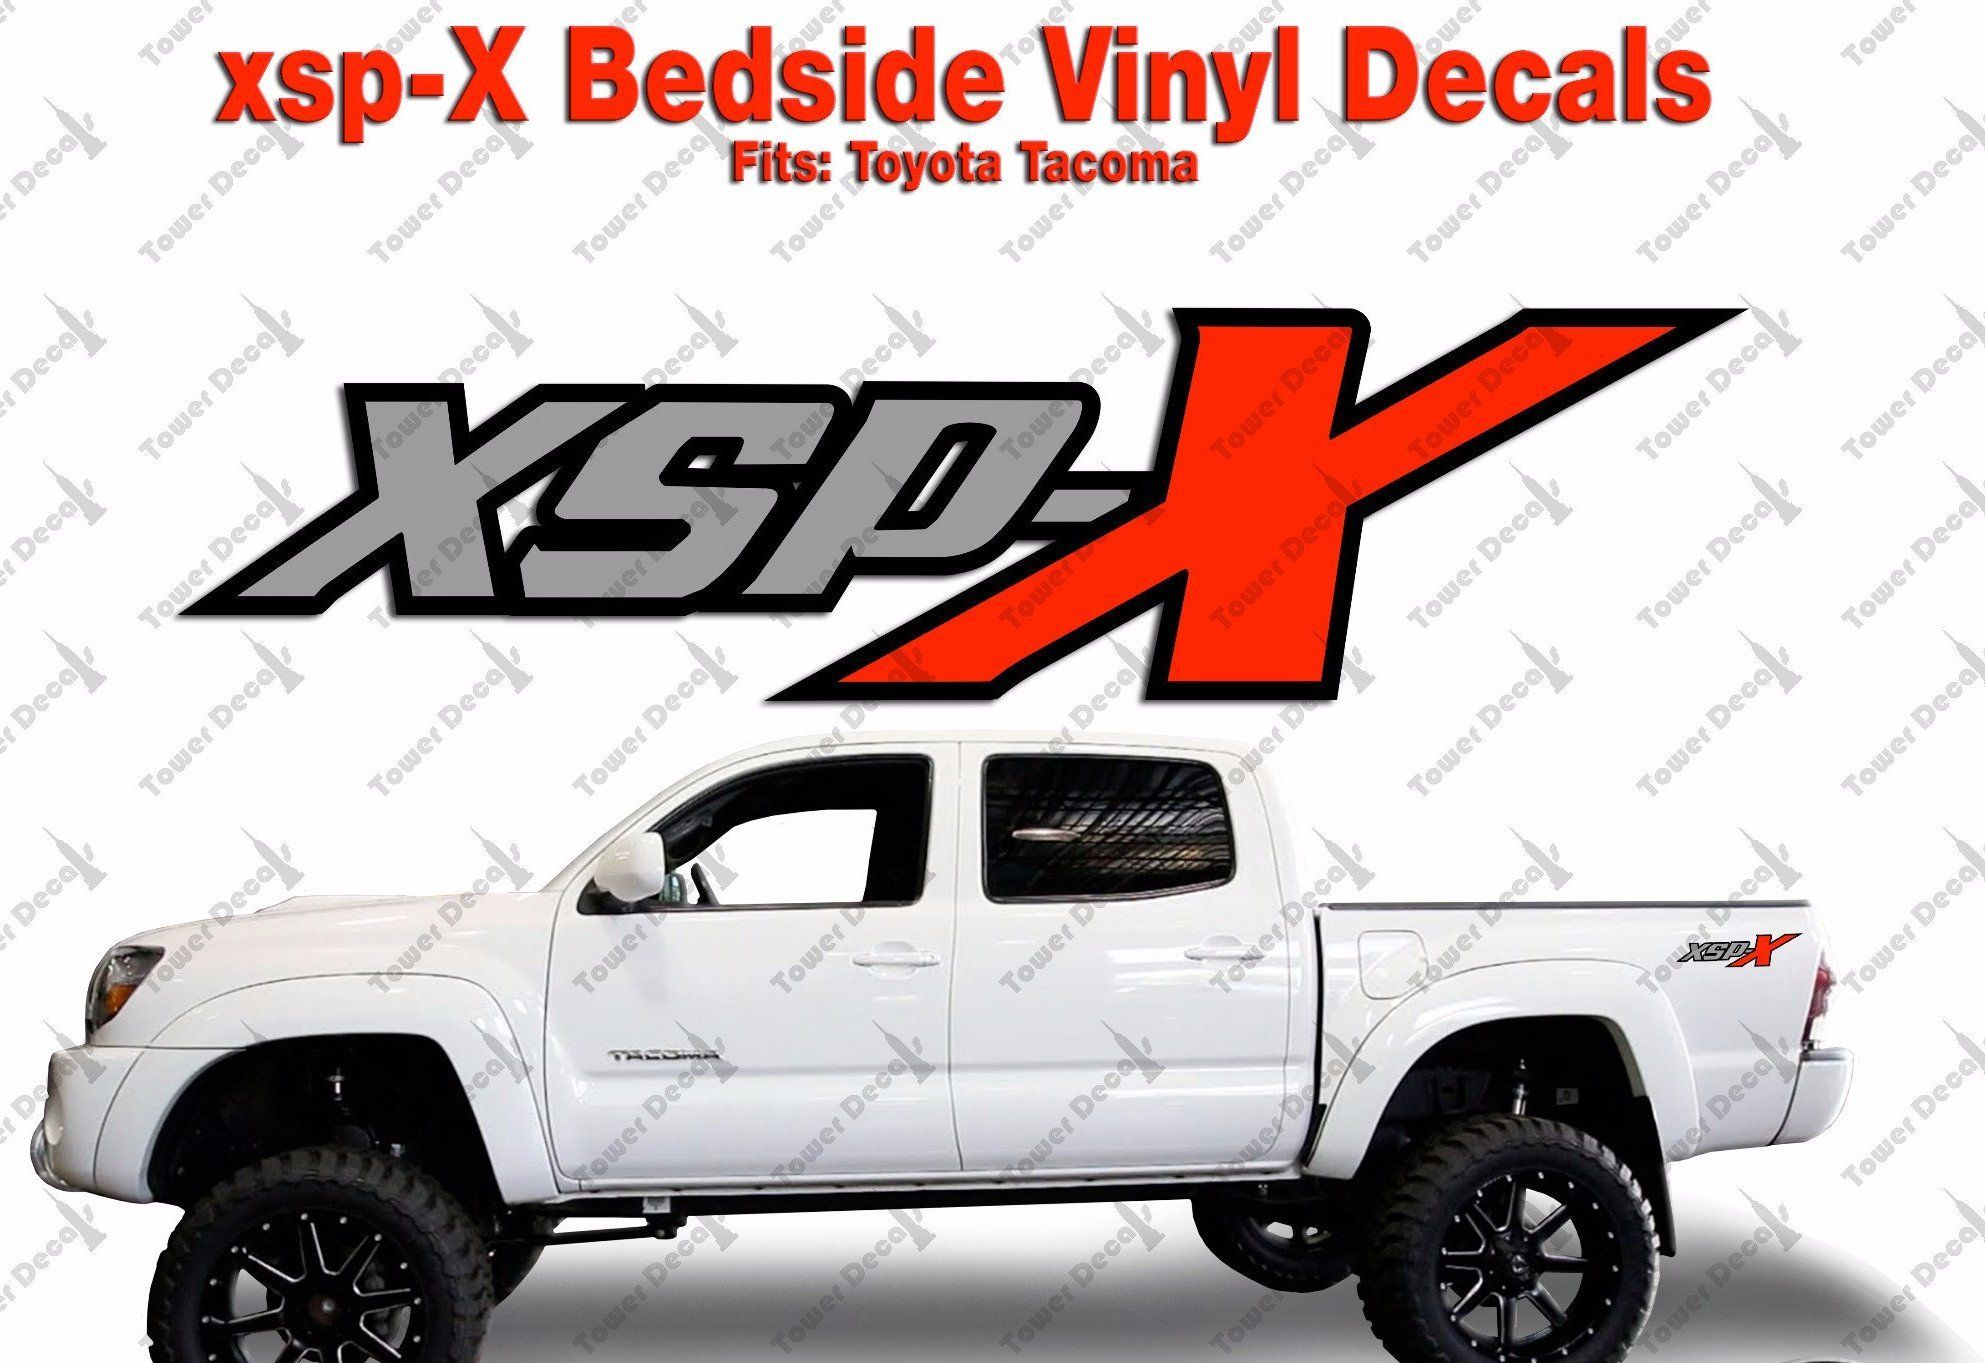 XSP X 3 Color Package Vinyl Decals Truck Bedside Fits Toyota Ta a